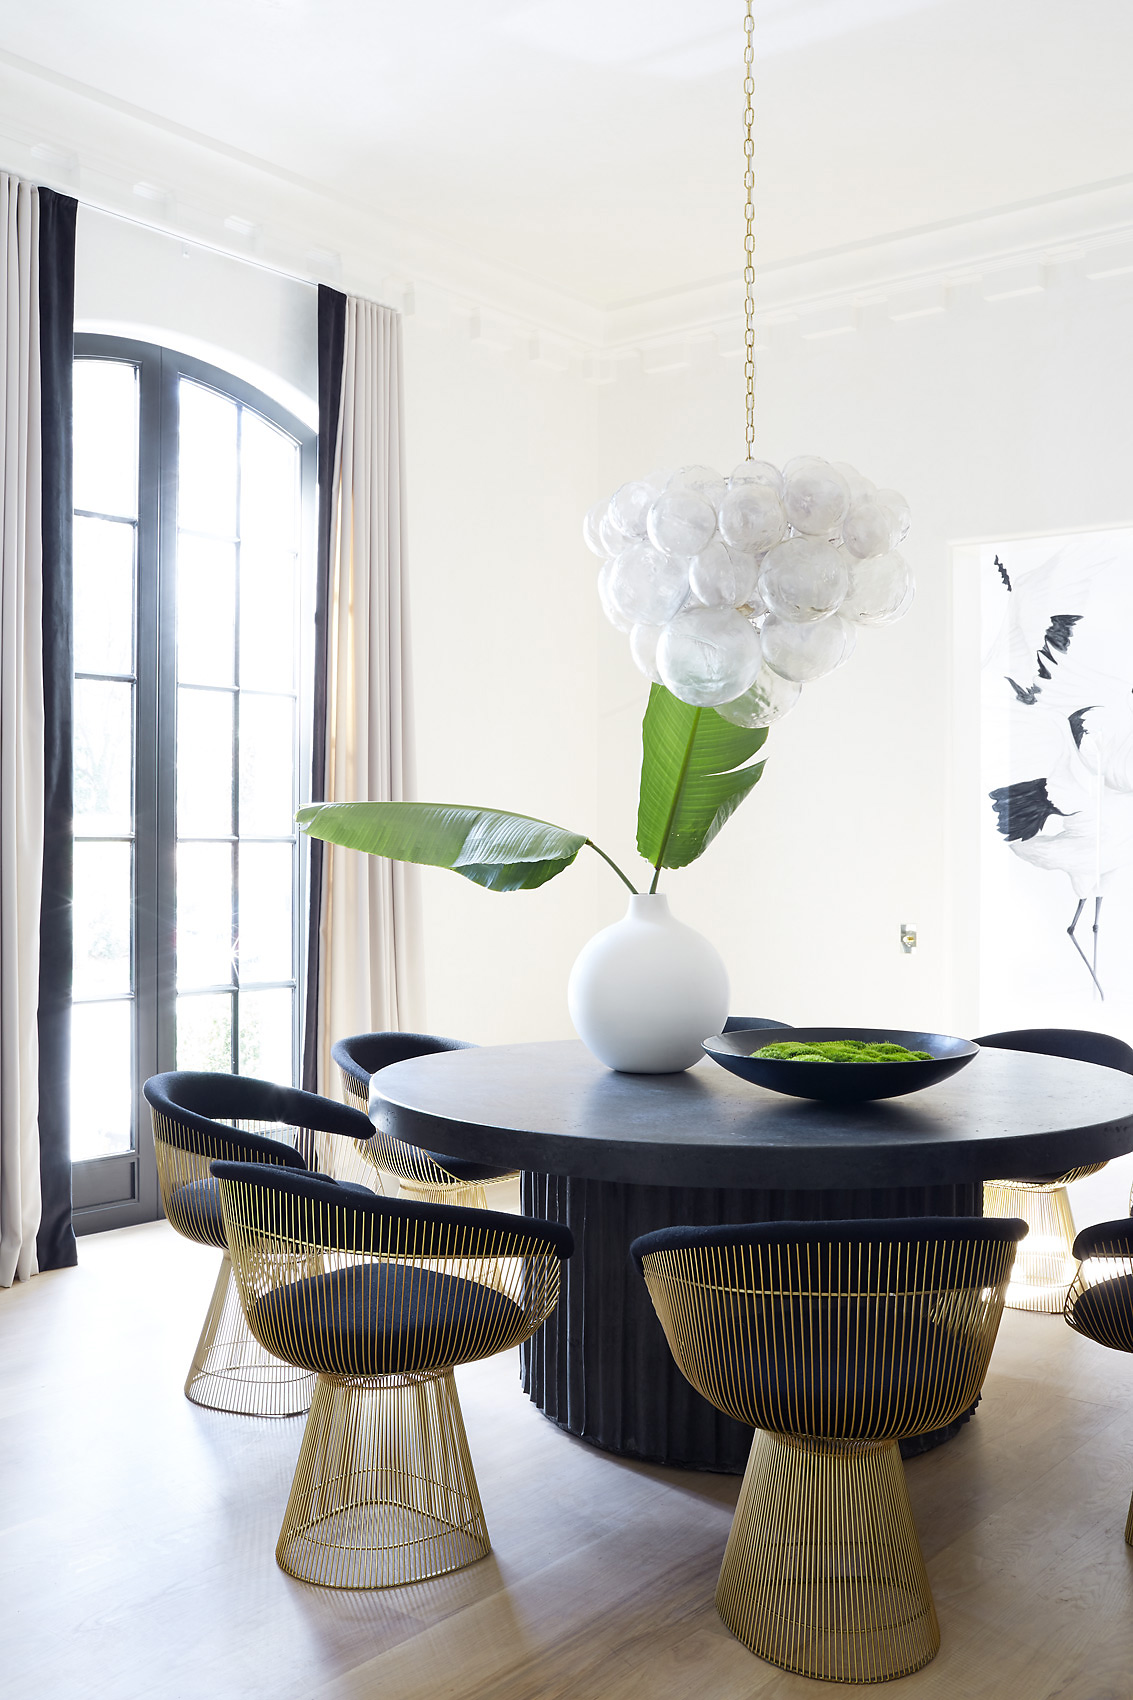 Melanie Turner Interiors dining room with Knoll and concrete, Mali Azima Photographer